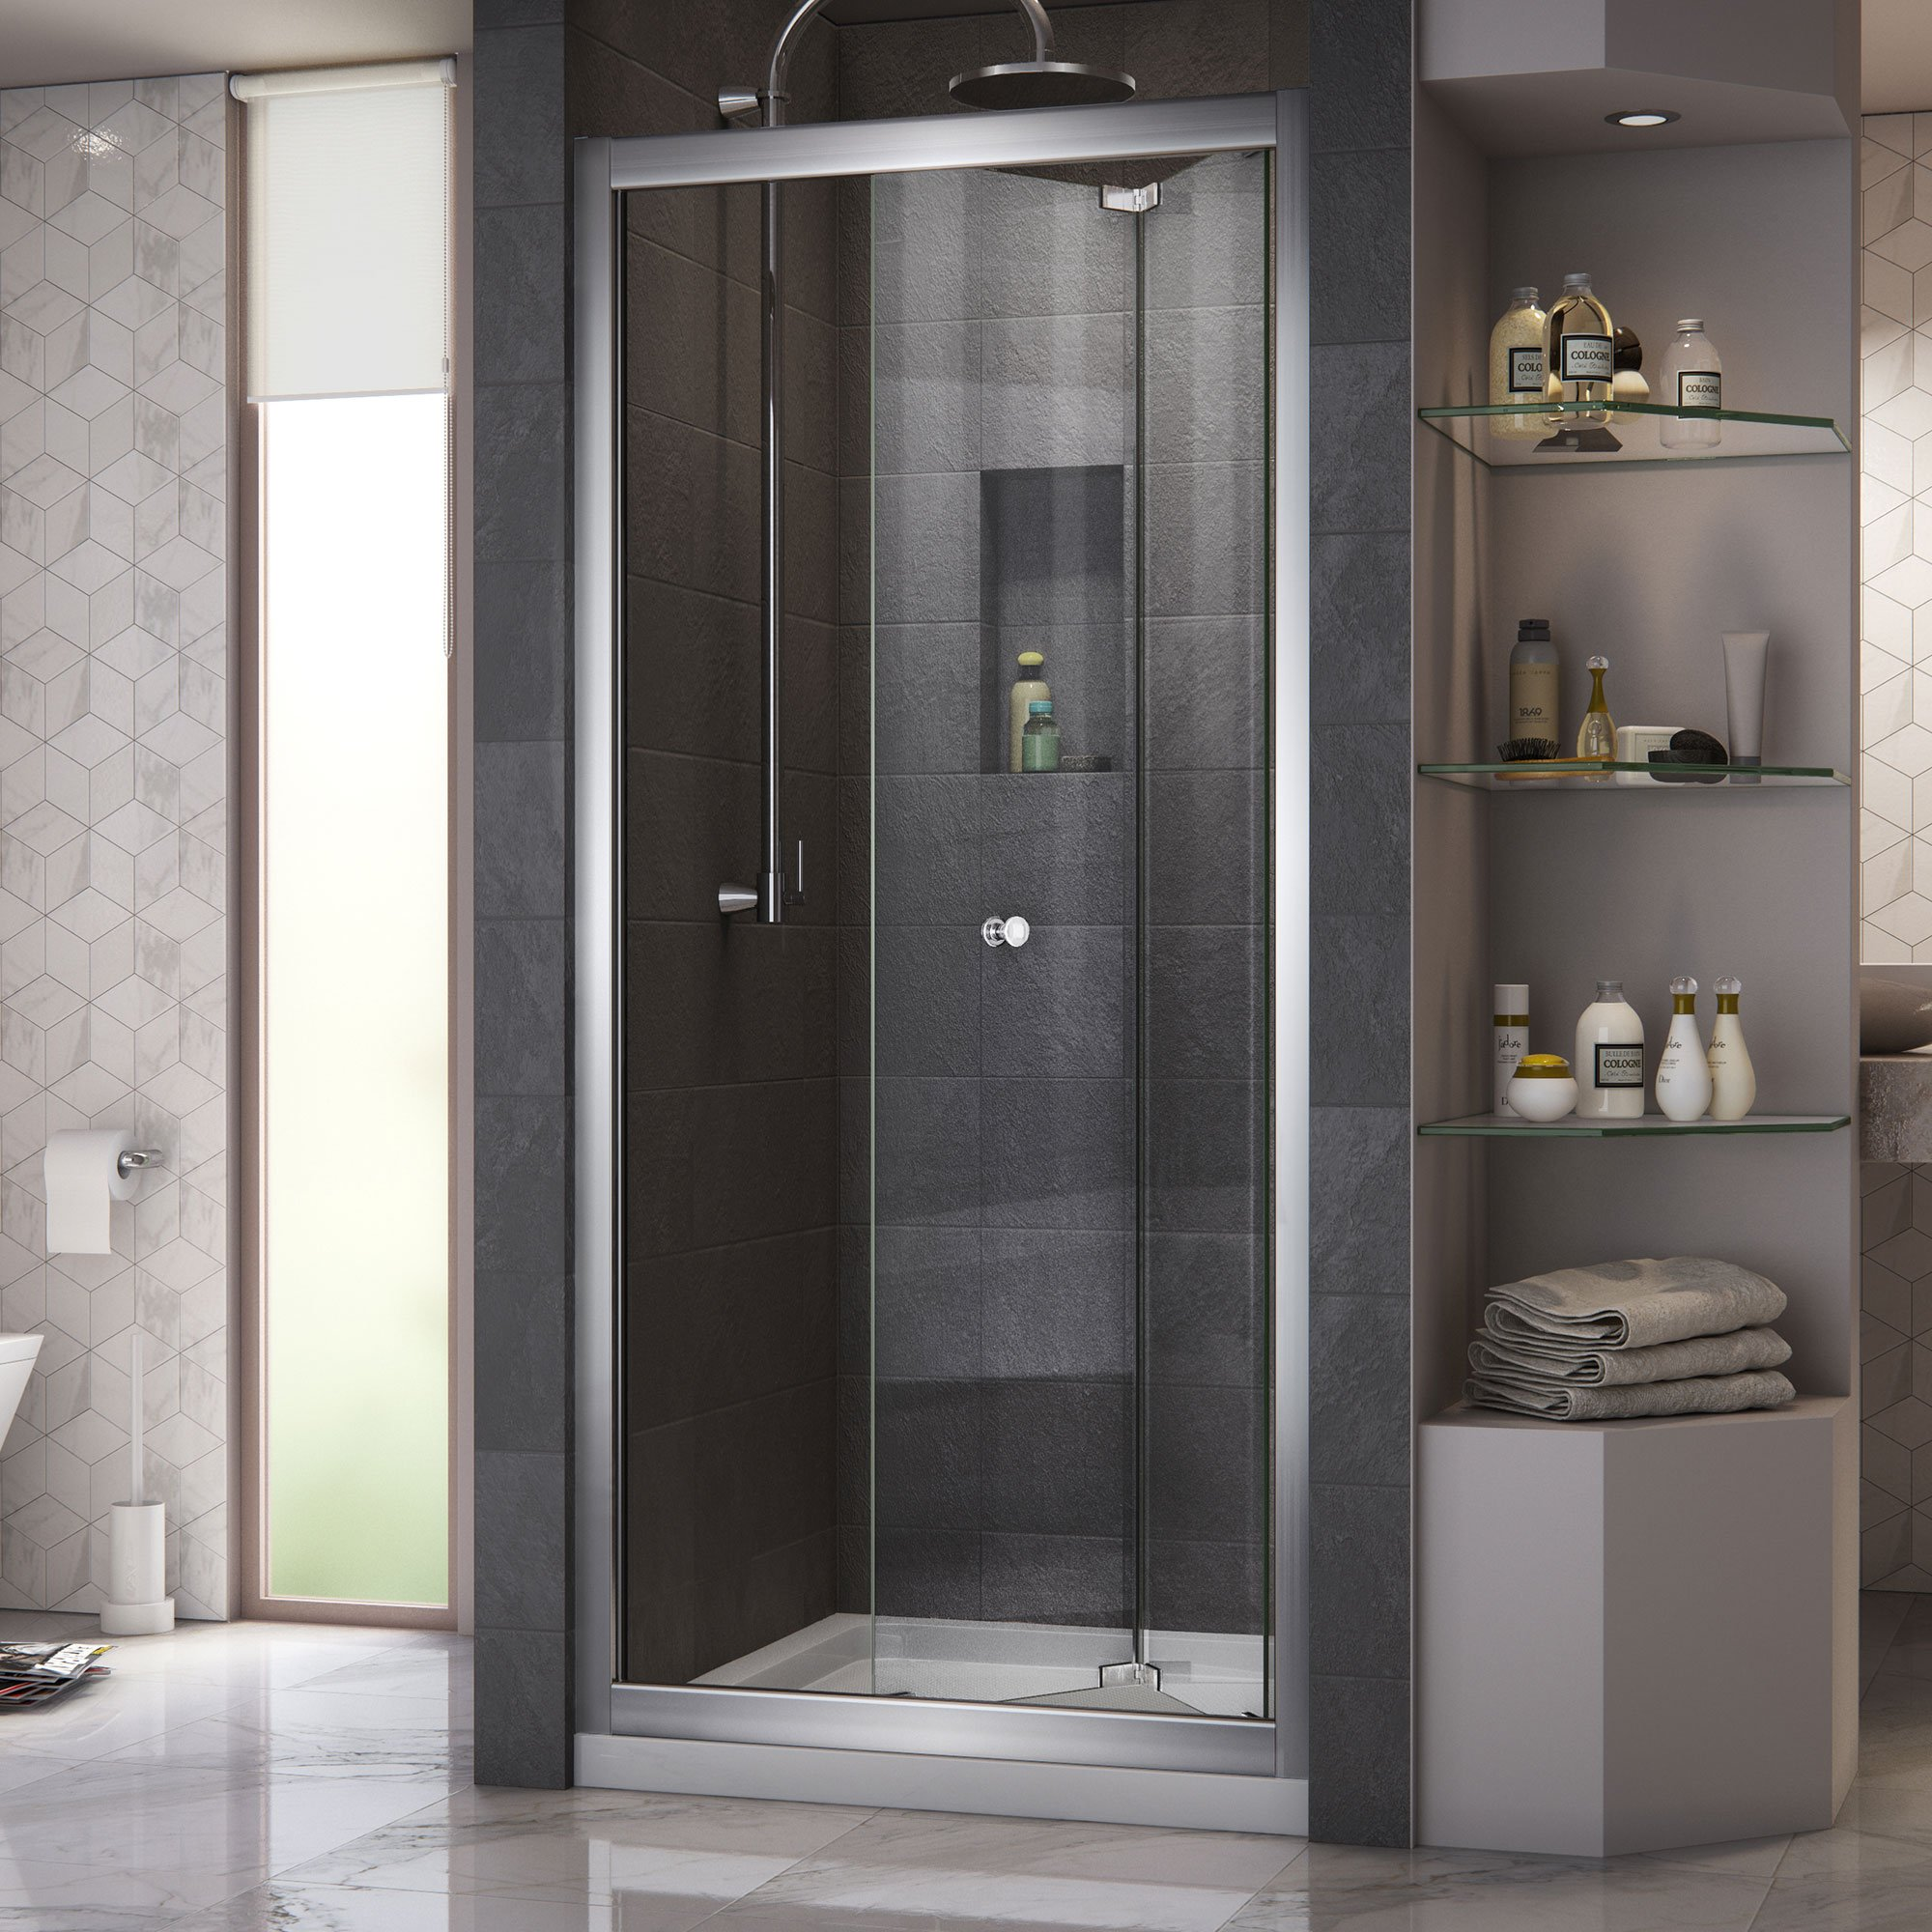 DreamLine Butterfly 34-35 1/2 in. Width, Frameless Bi-Fold Shower Door, 1/4'' Glass, Chrome Finish by DreamLine (Image #7)